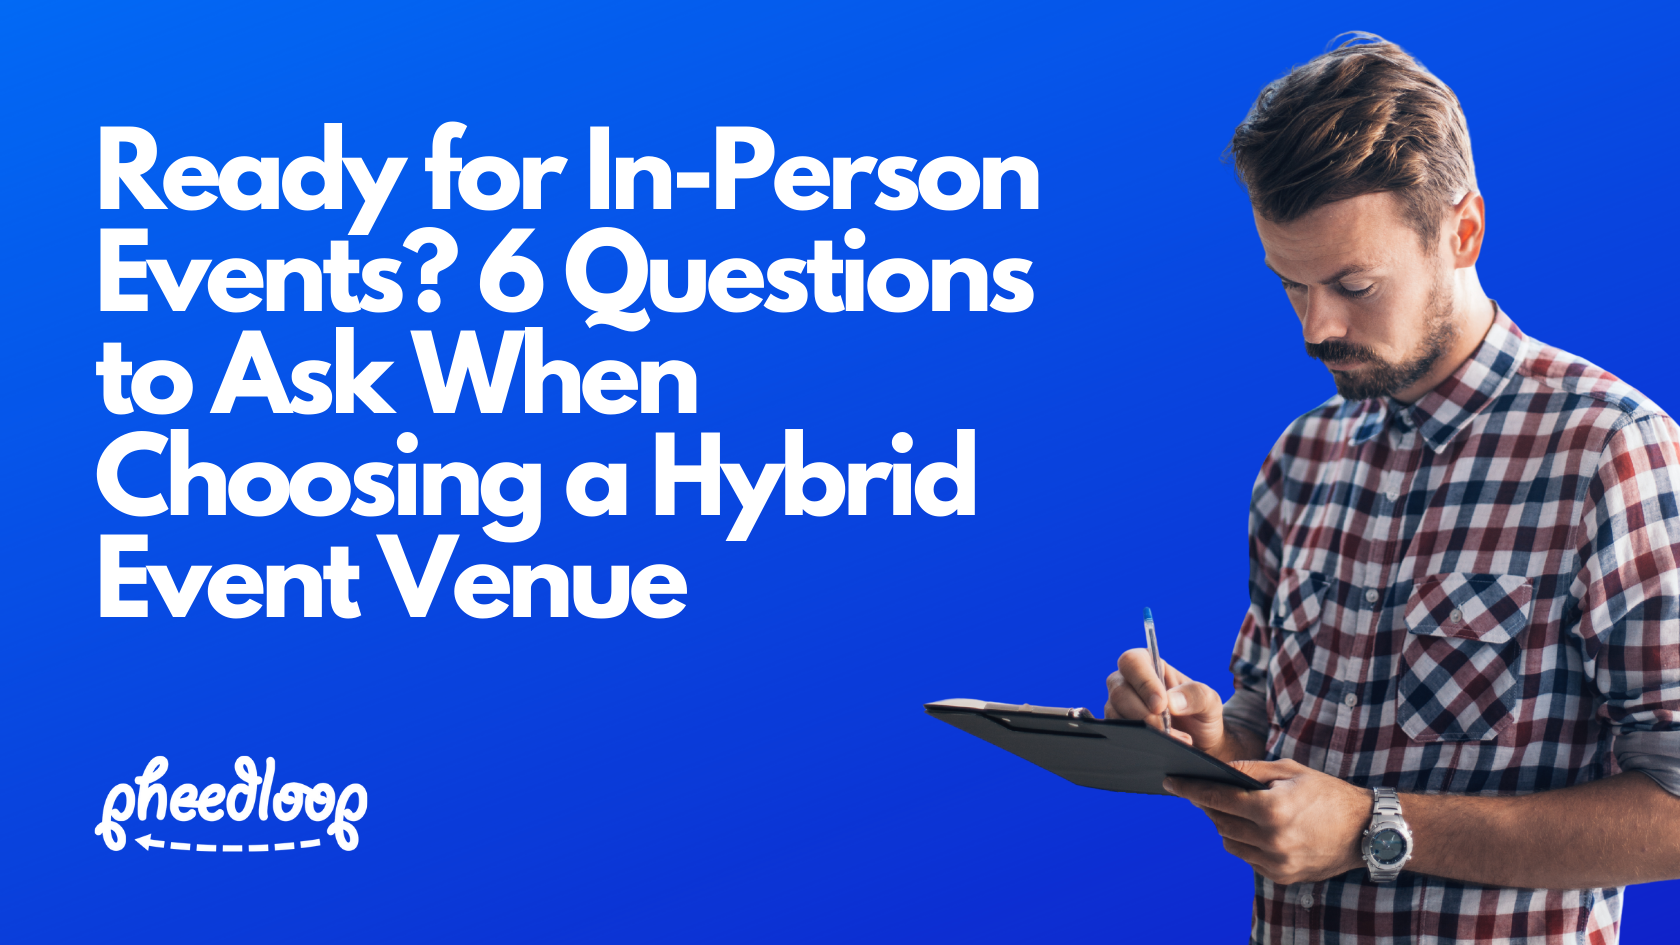 6 Questions to Ask When Choosing a Hybrid Event Venue